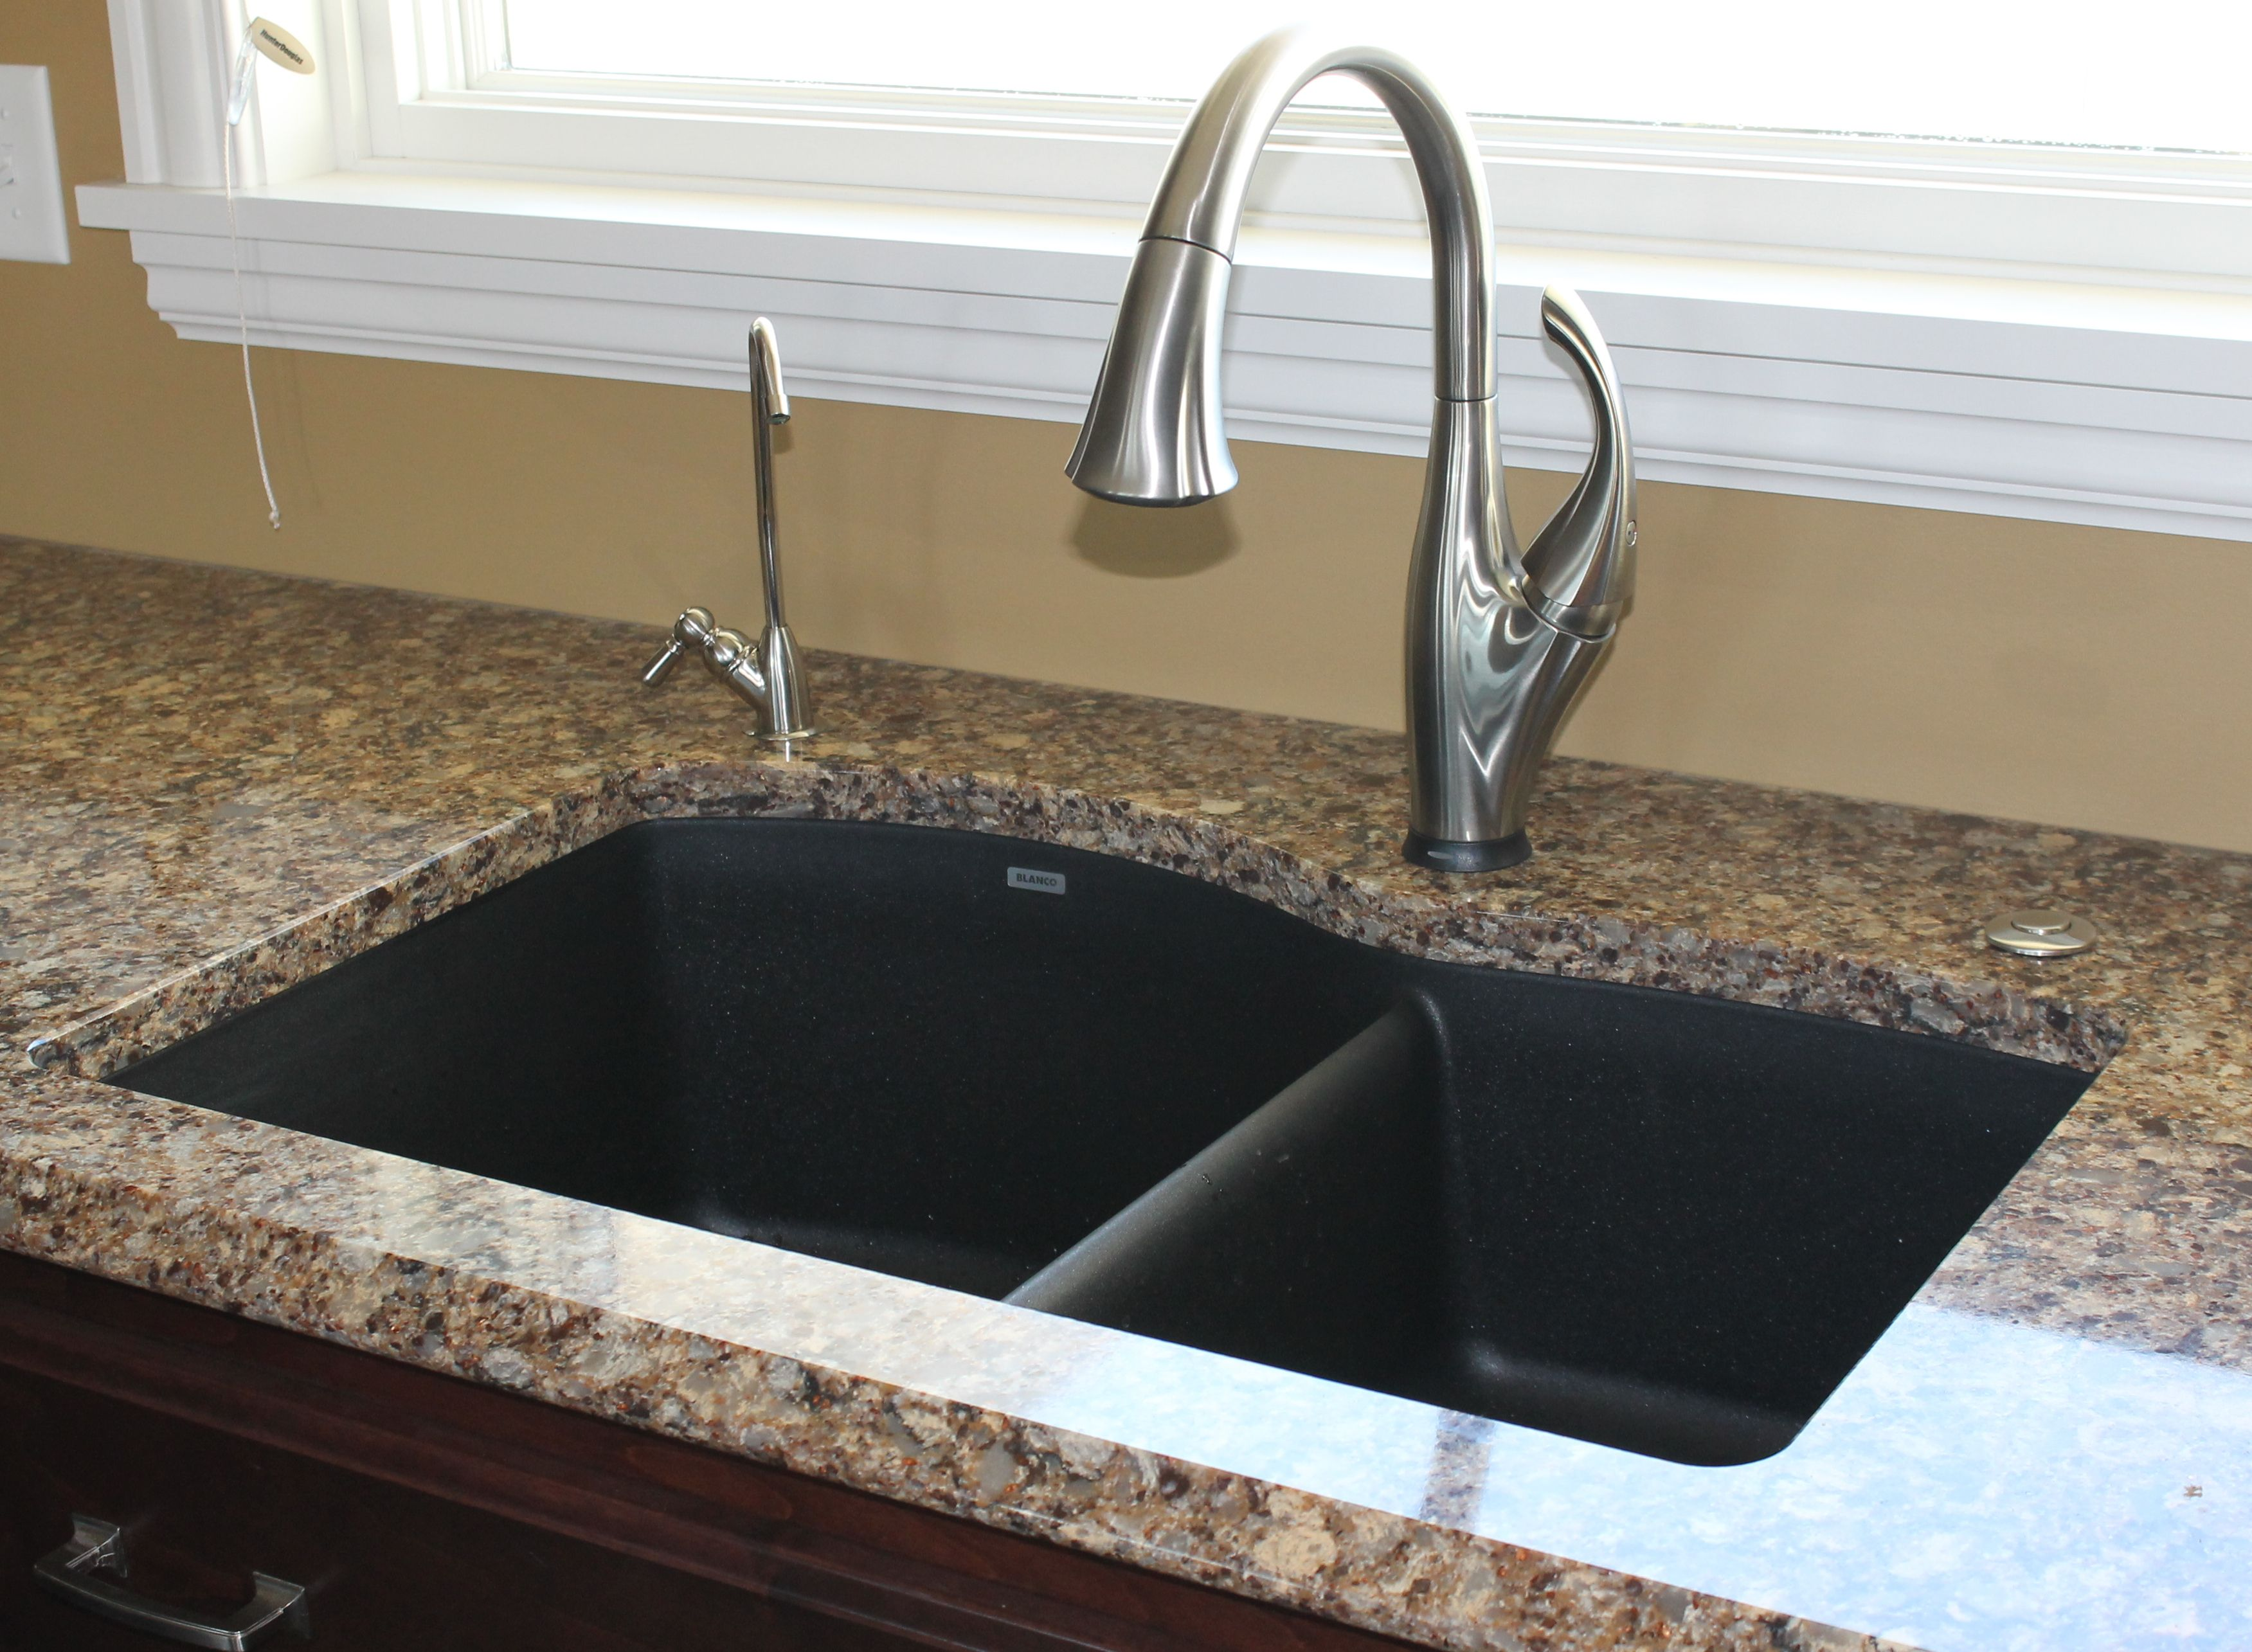 Love The Blanco Silgranit Kitchen Sinks Pair It With A Delta Touch2o Faucet And Push Button